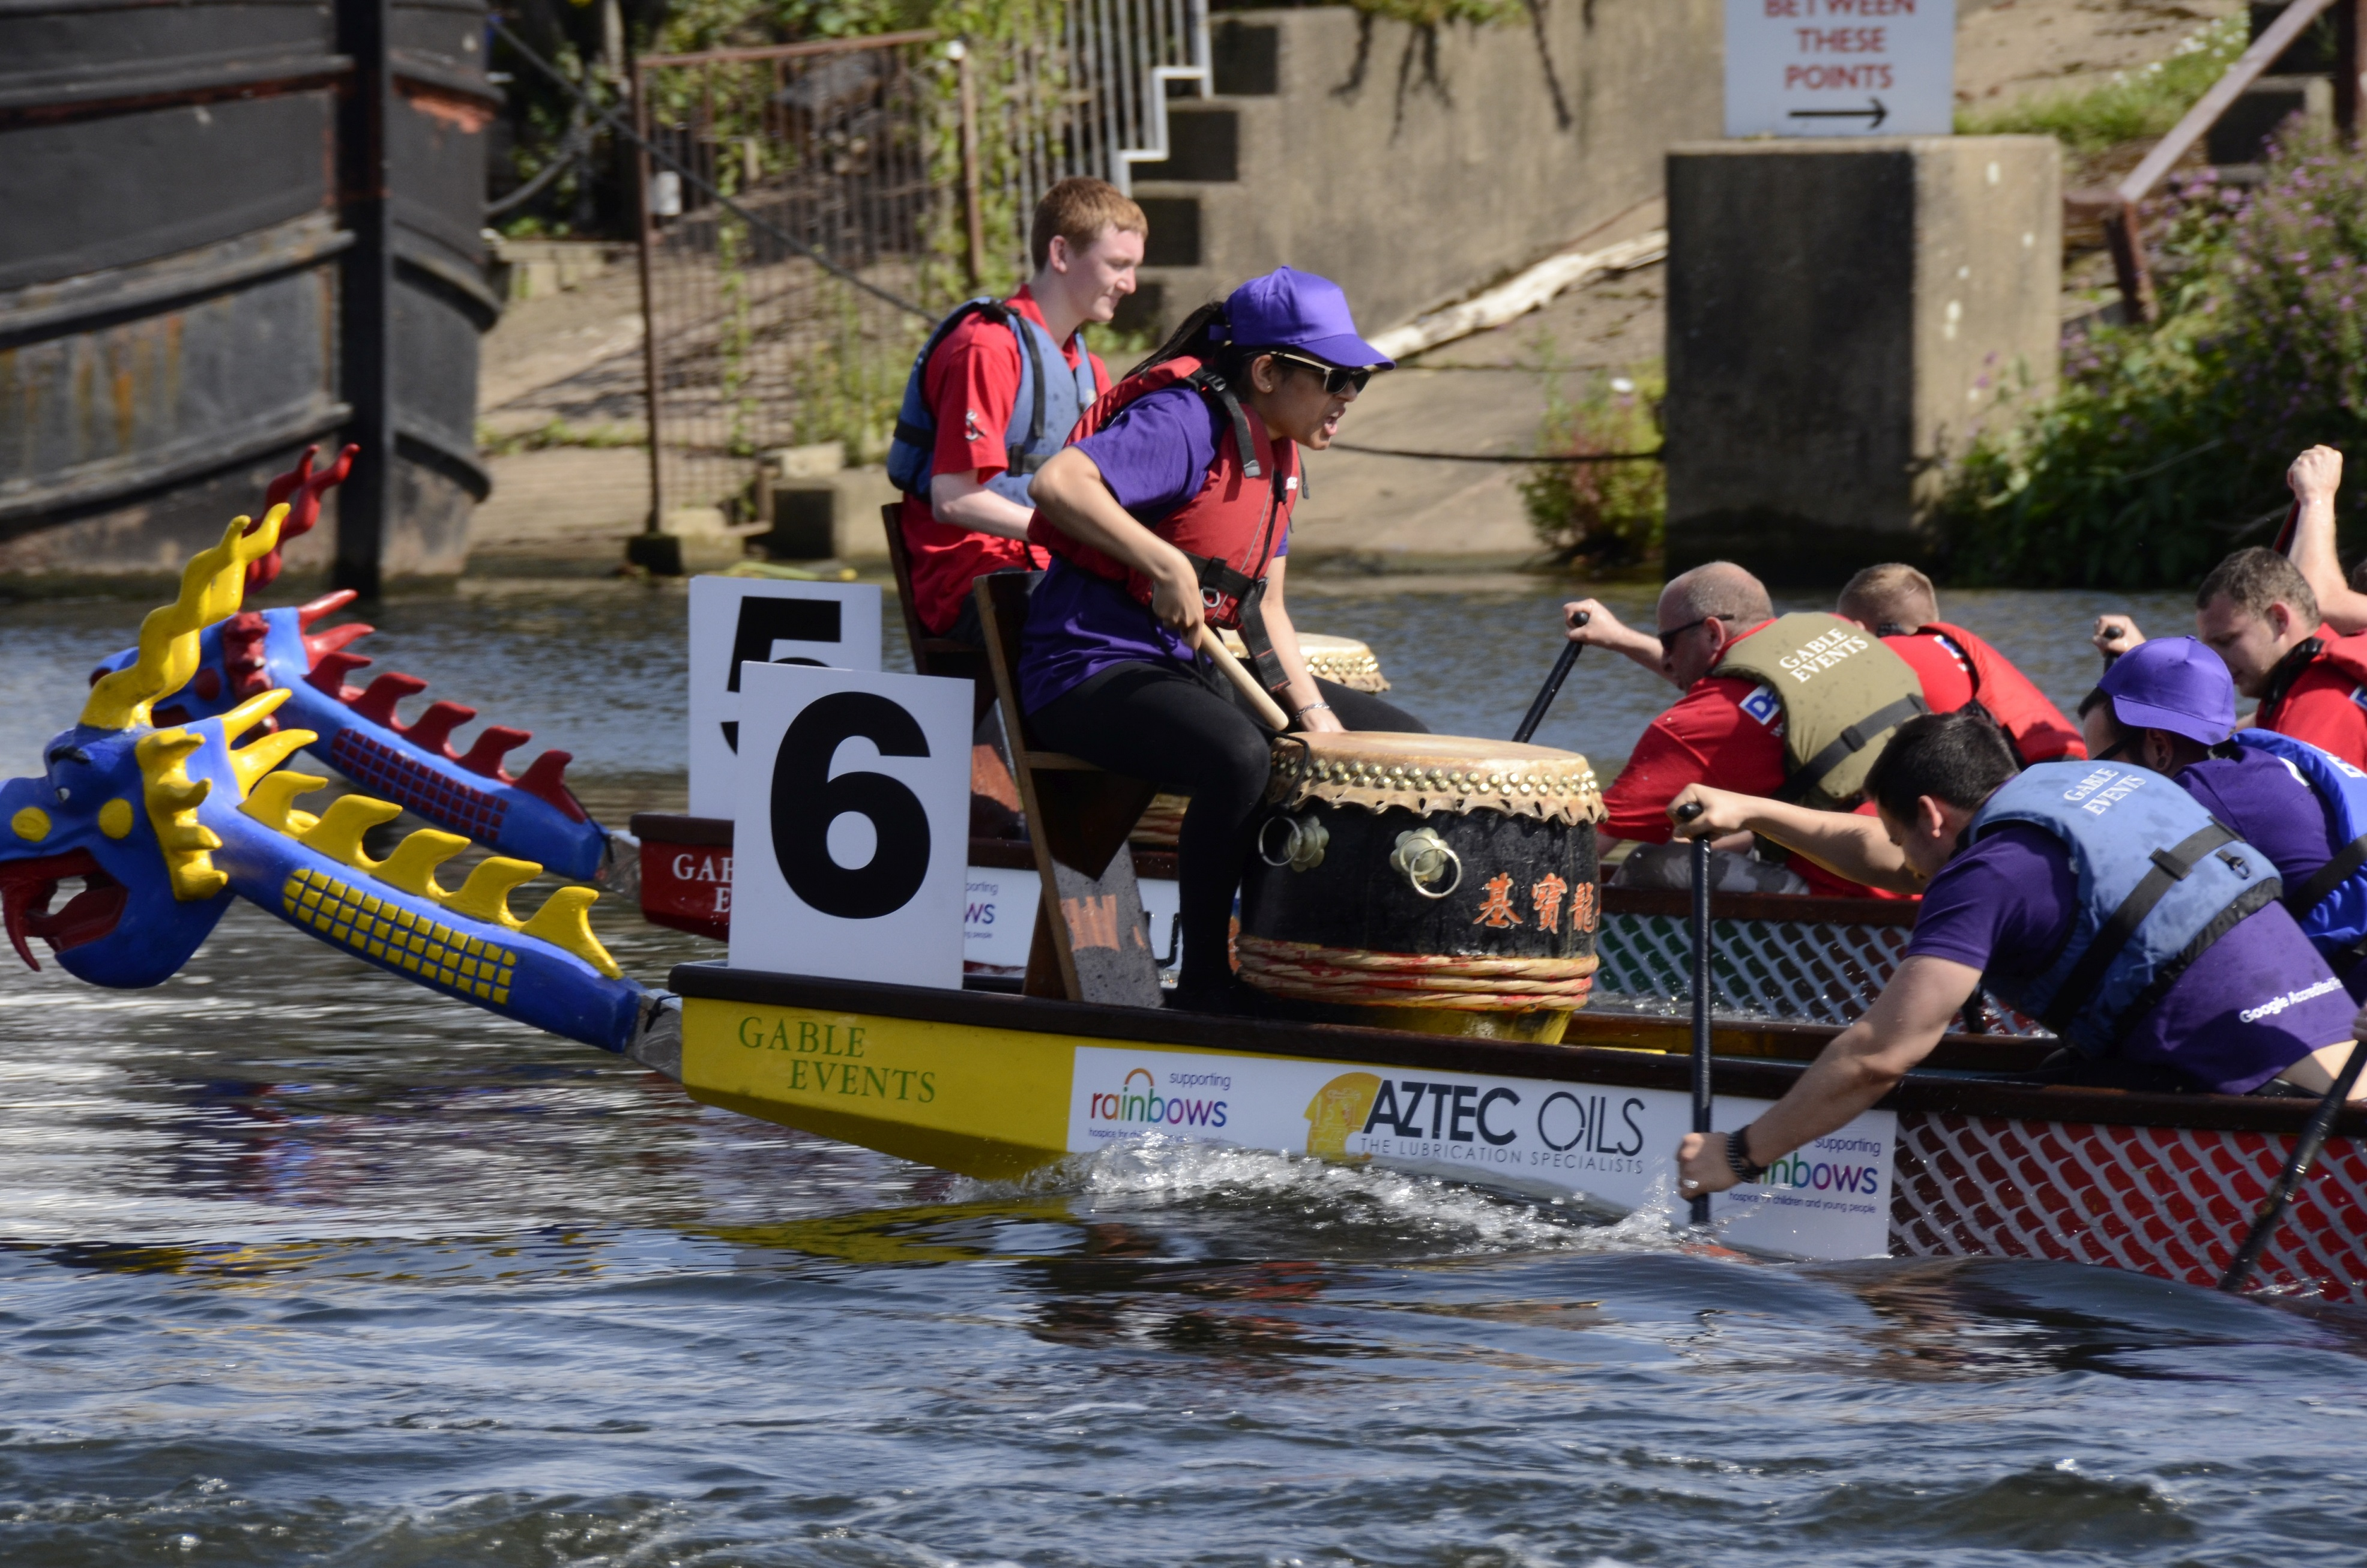 Still time to enter a team for the Nottingham Riverside Festival Dragon Boat Challenge on Sunday 5th August